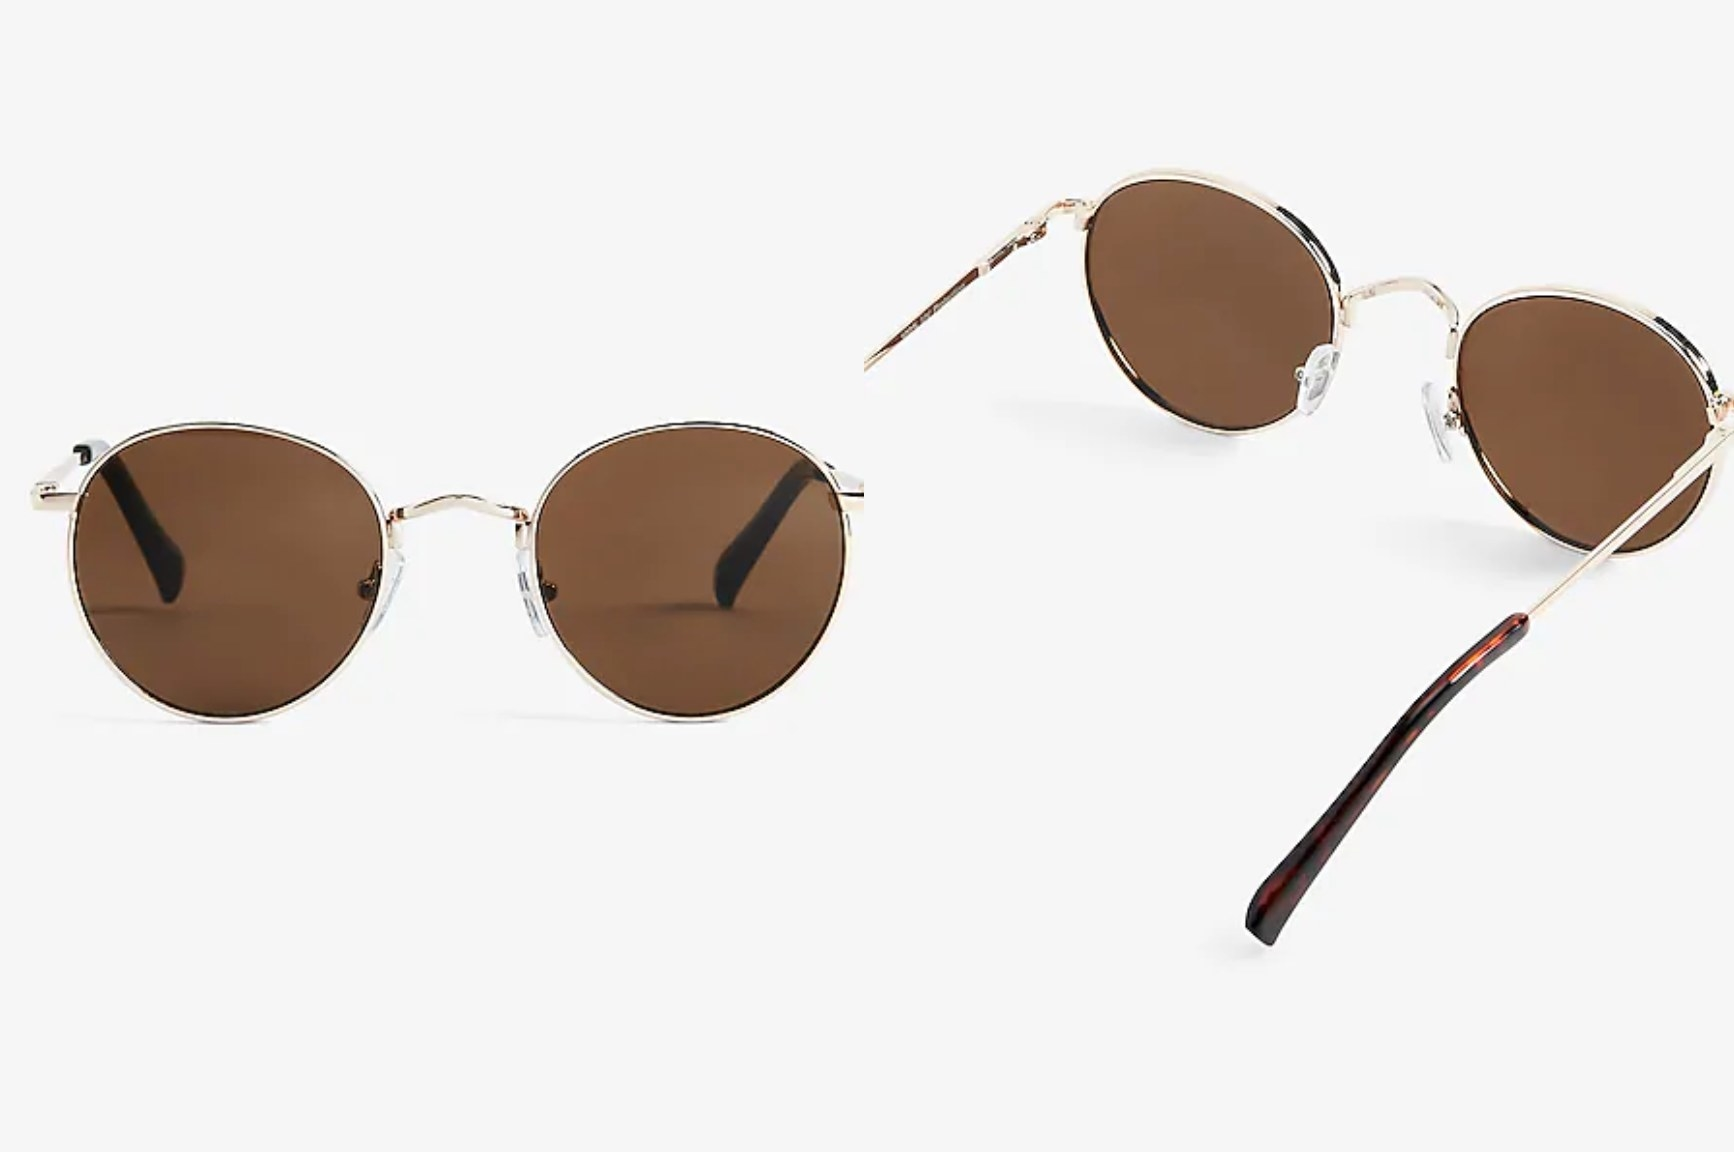 The pair of round-frame sunglasses in shiny gold